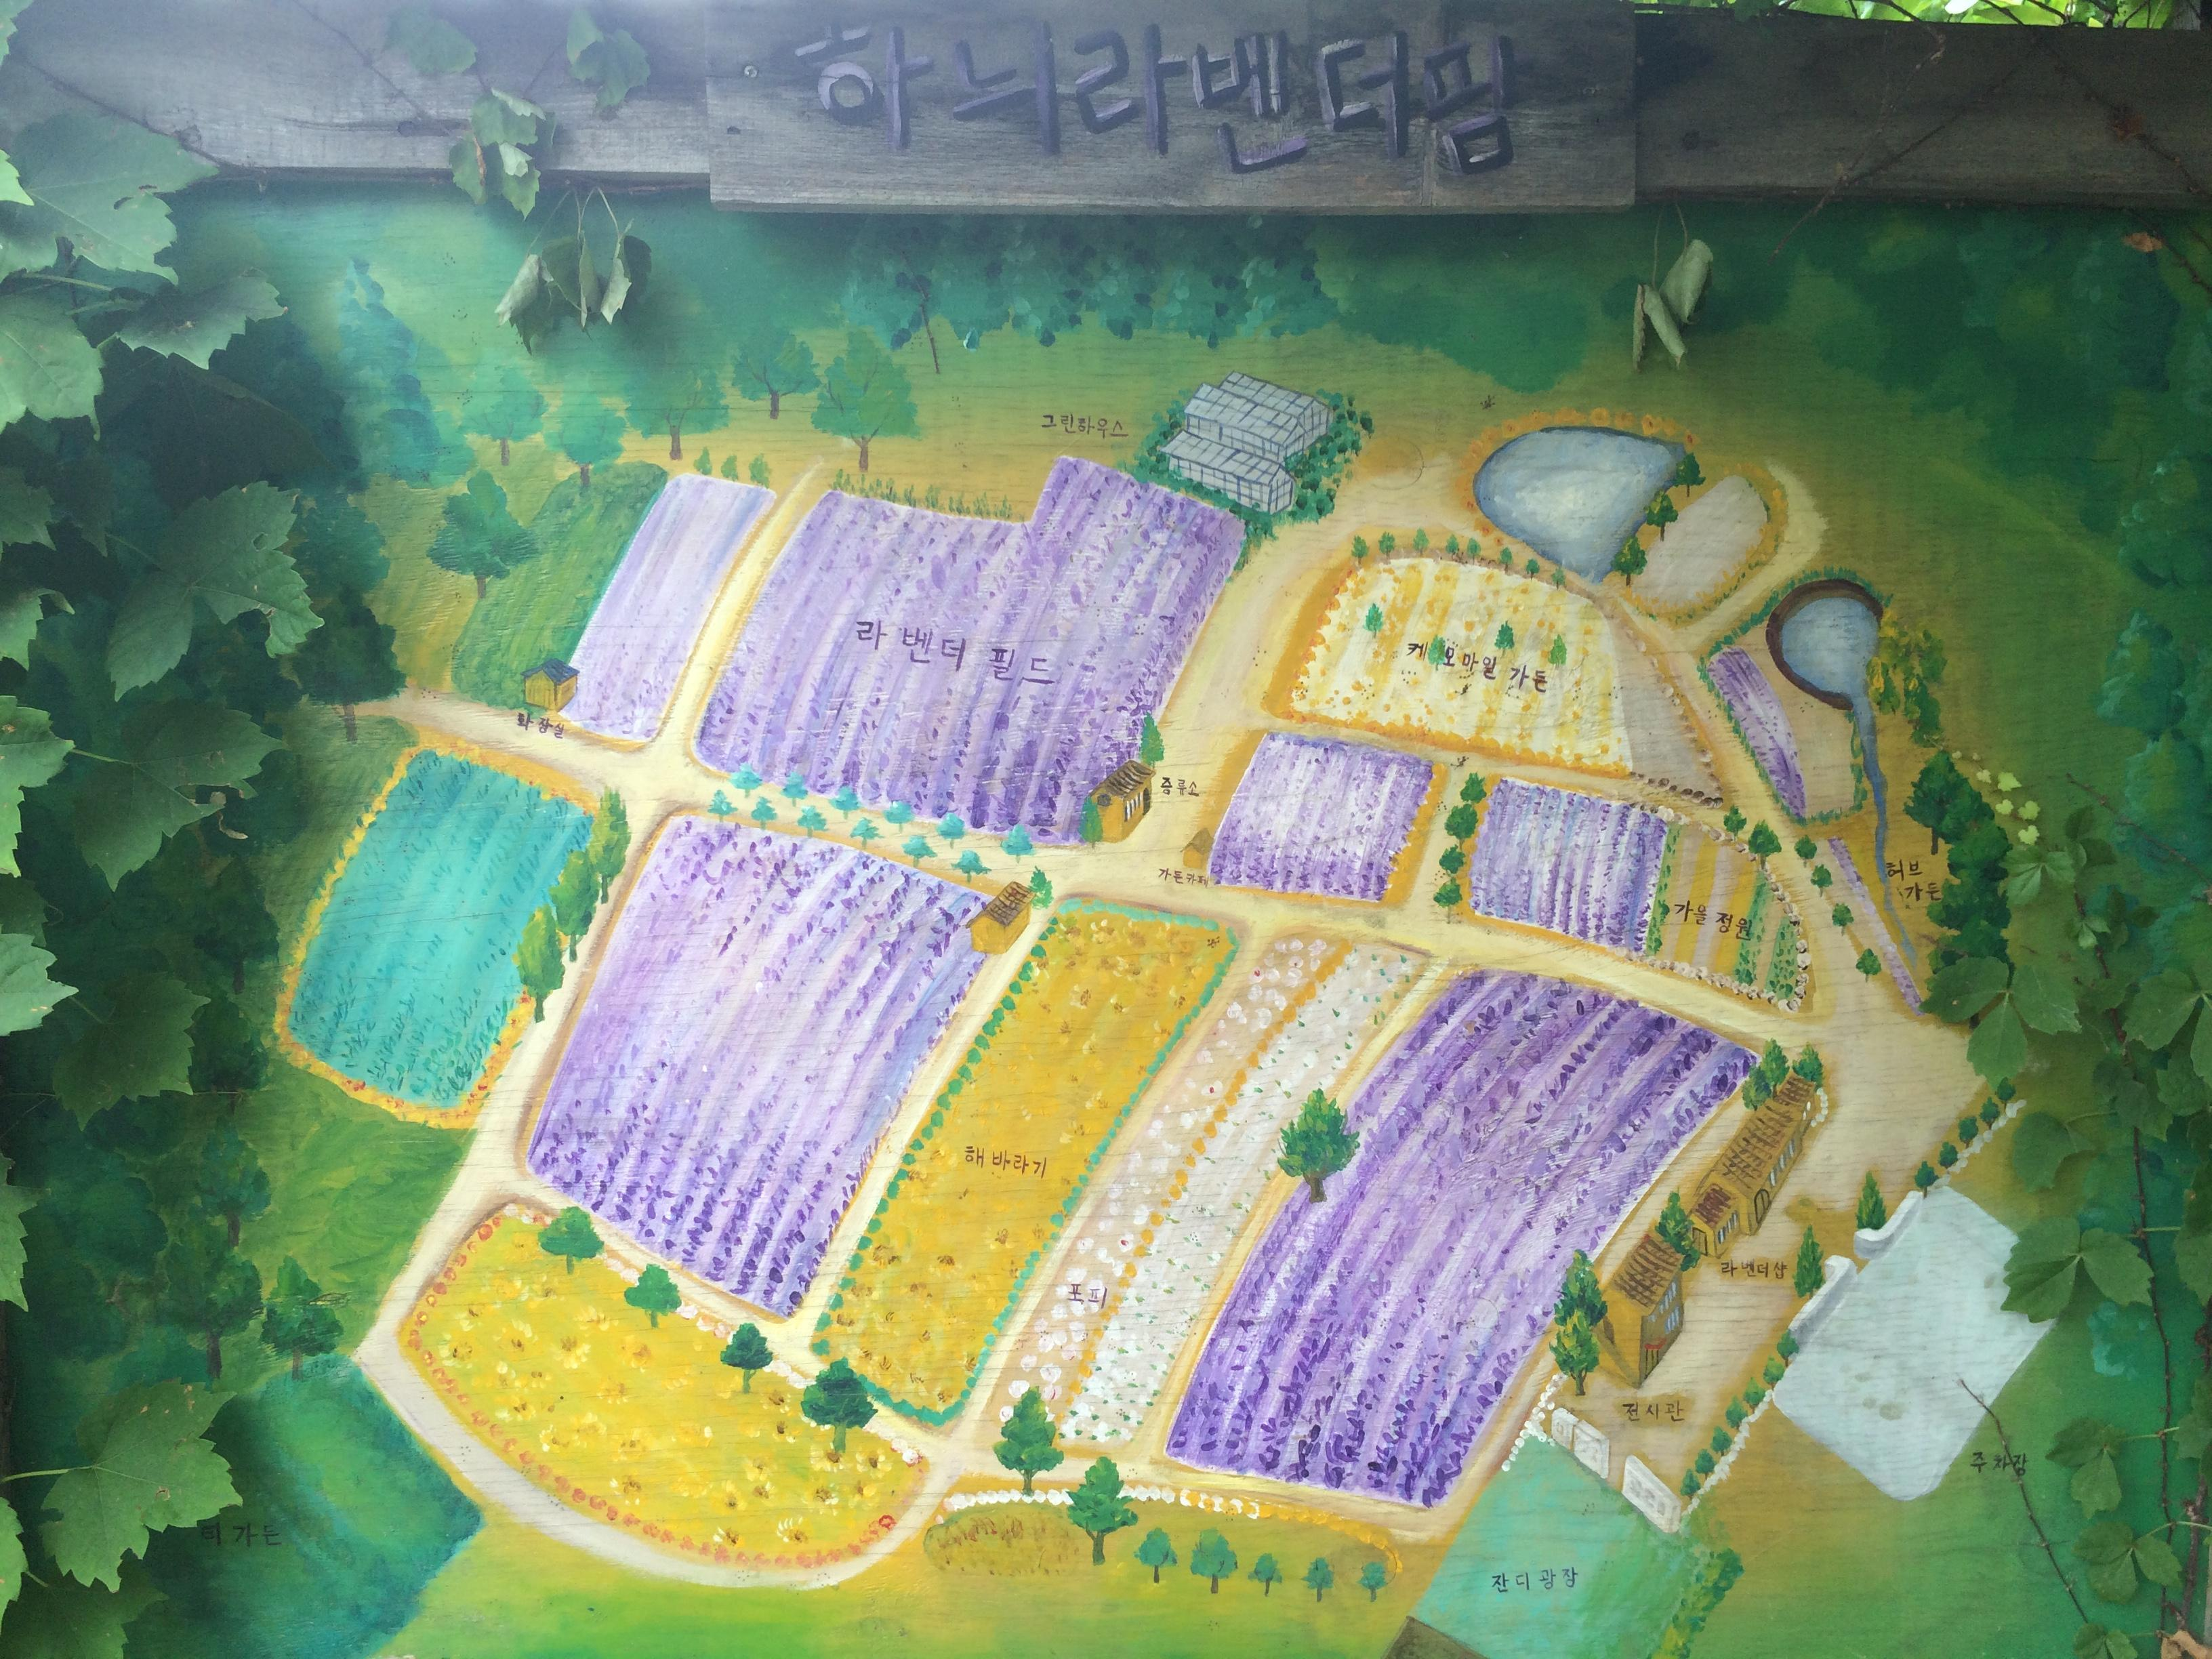 Daytrip From Seoul: Hani Lavender Farm (하늬 라벤더 팜)